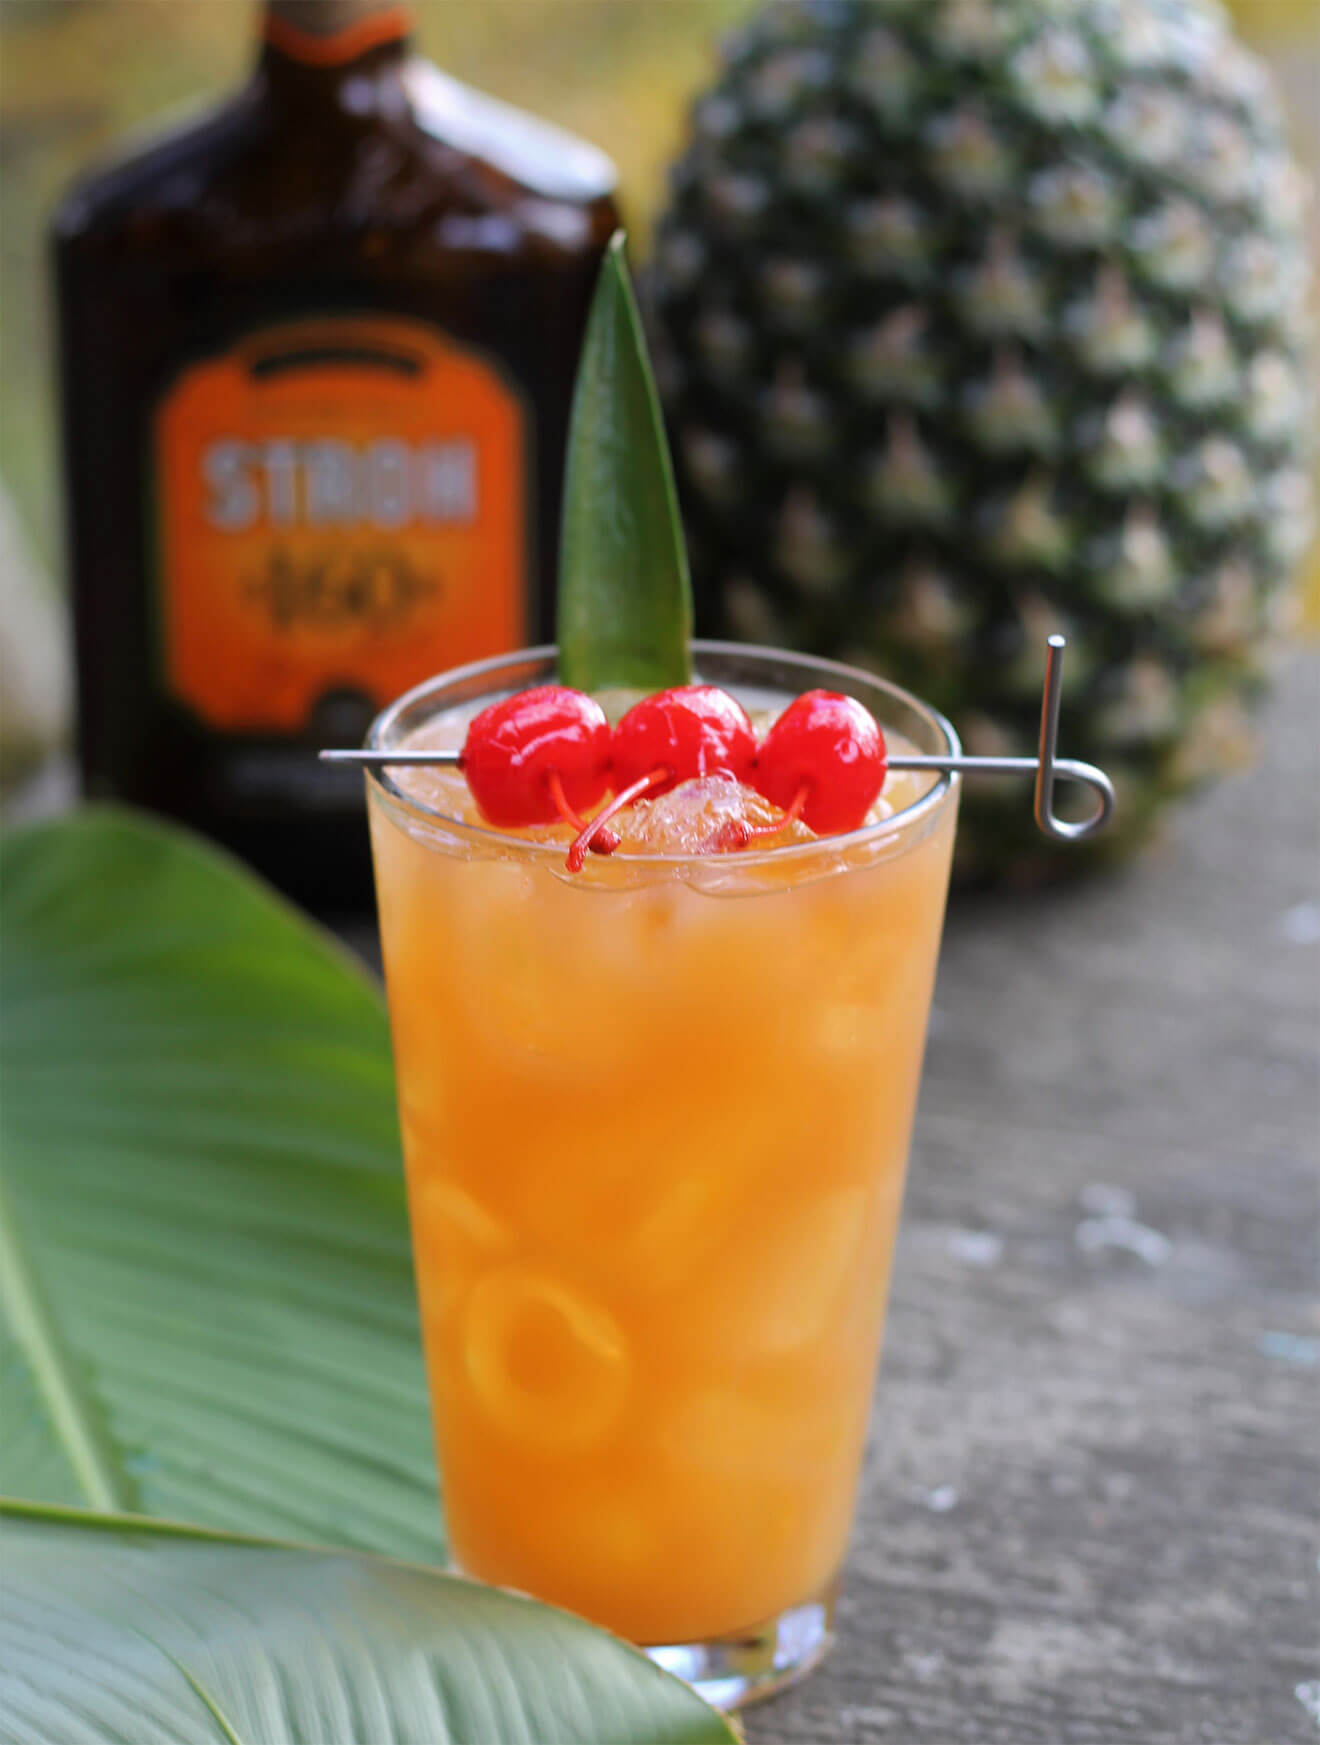 Three Dots and a Dash cocktail with cherry garnish, bottle and pineapple